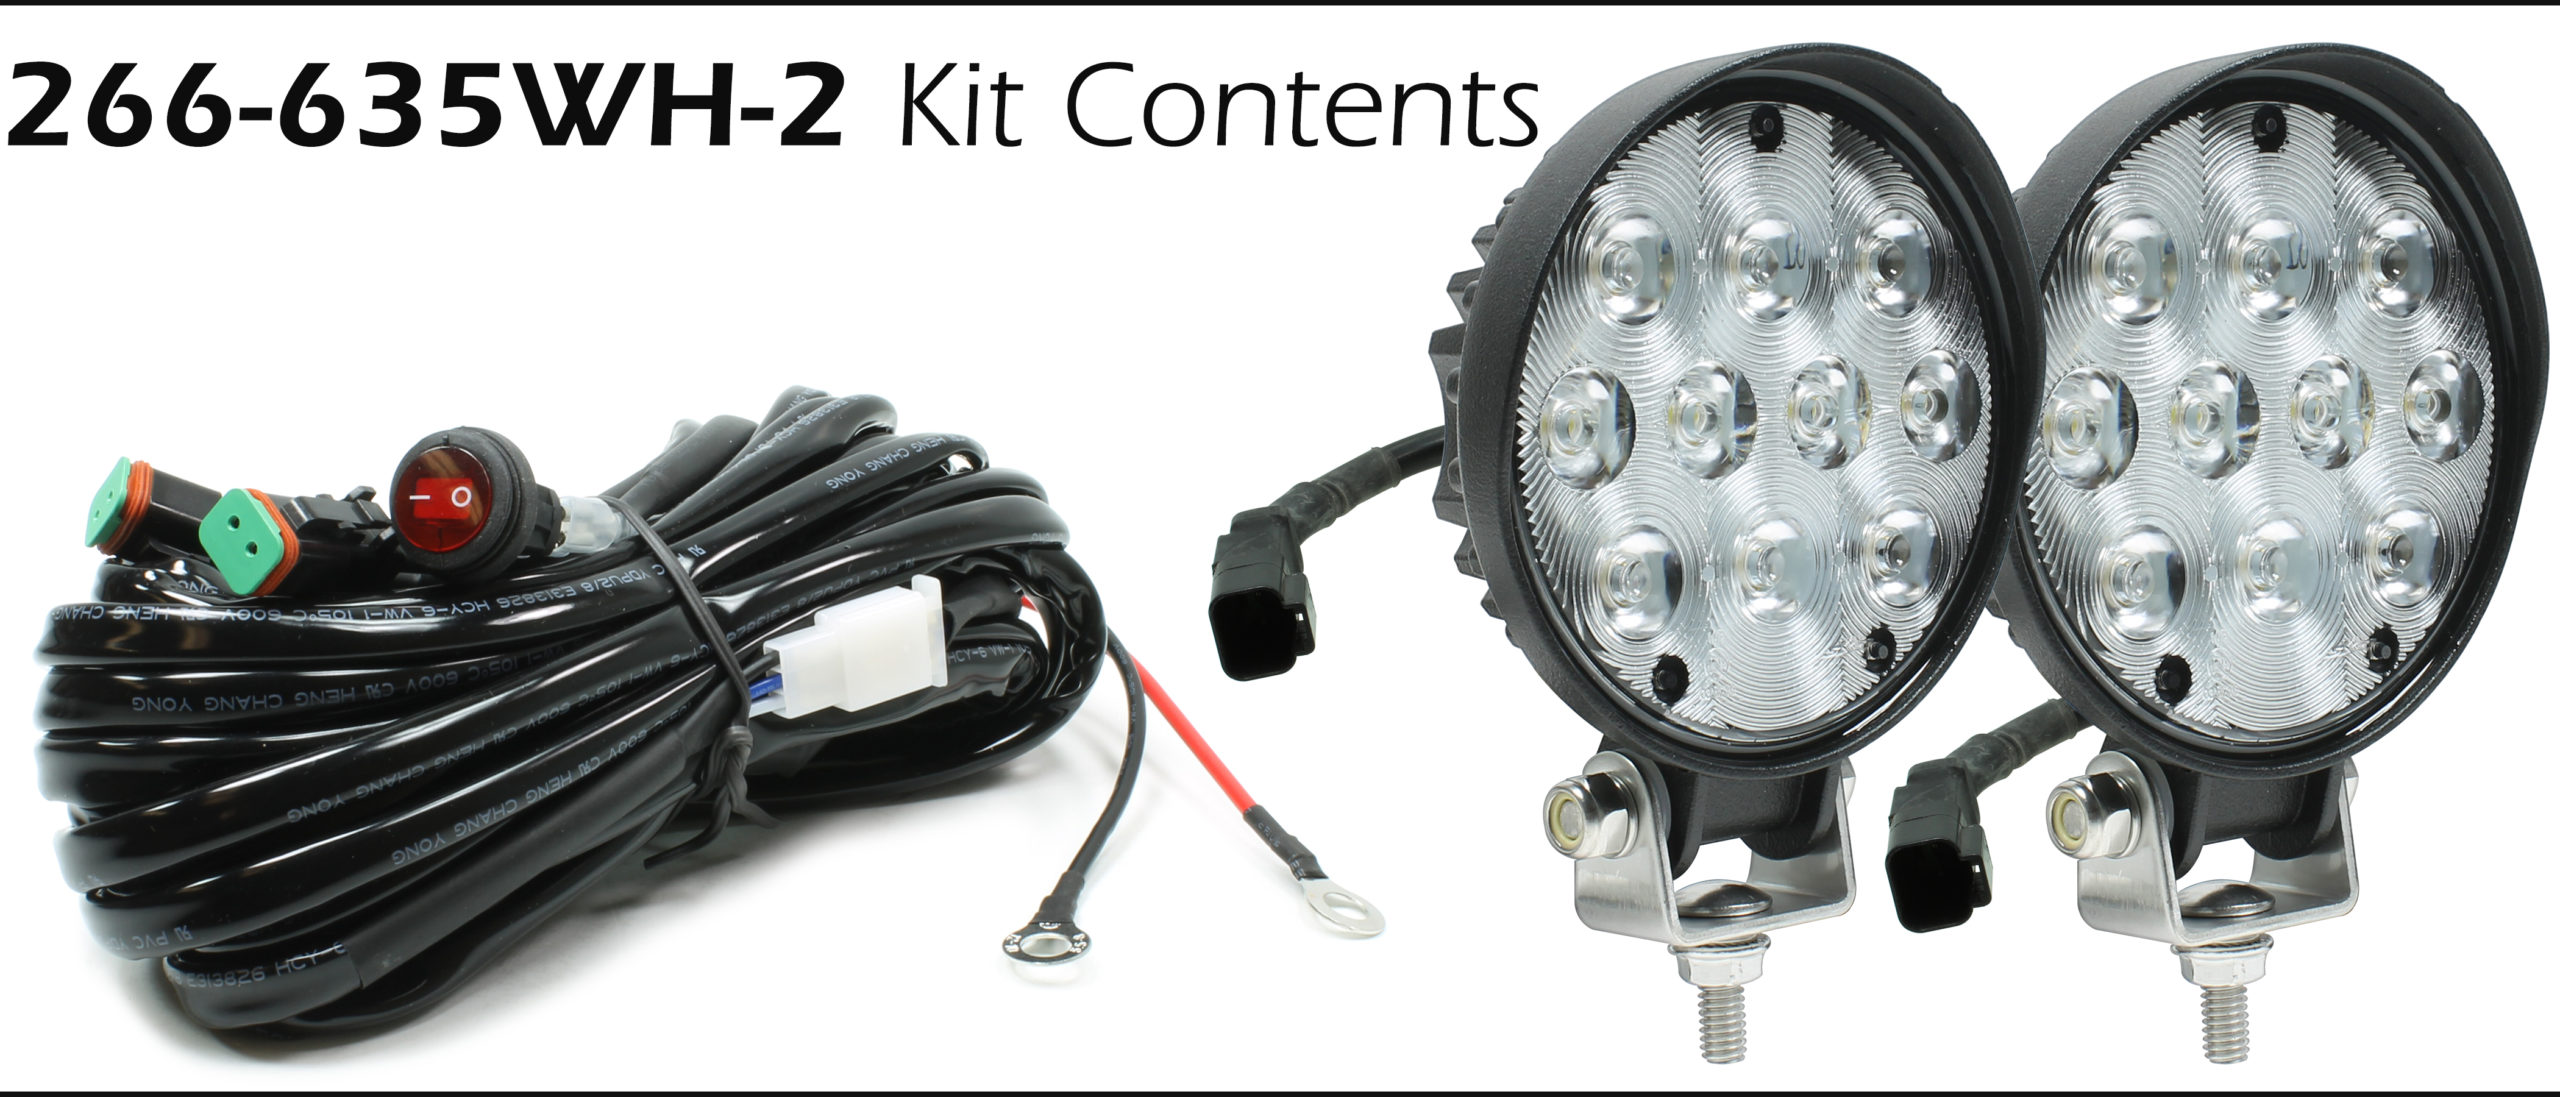 Auer Automotive 266-635WH-2 Dual 4.5-Inch Round LED Work Lamp